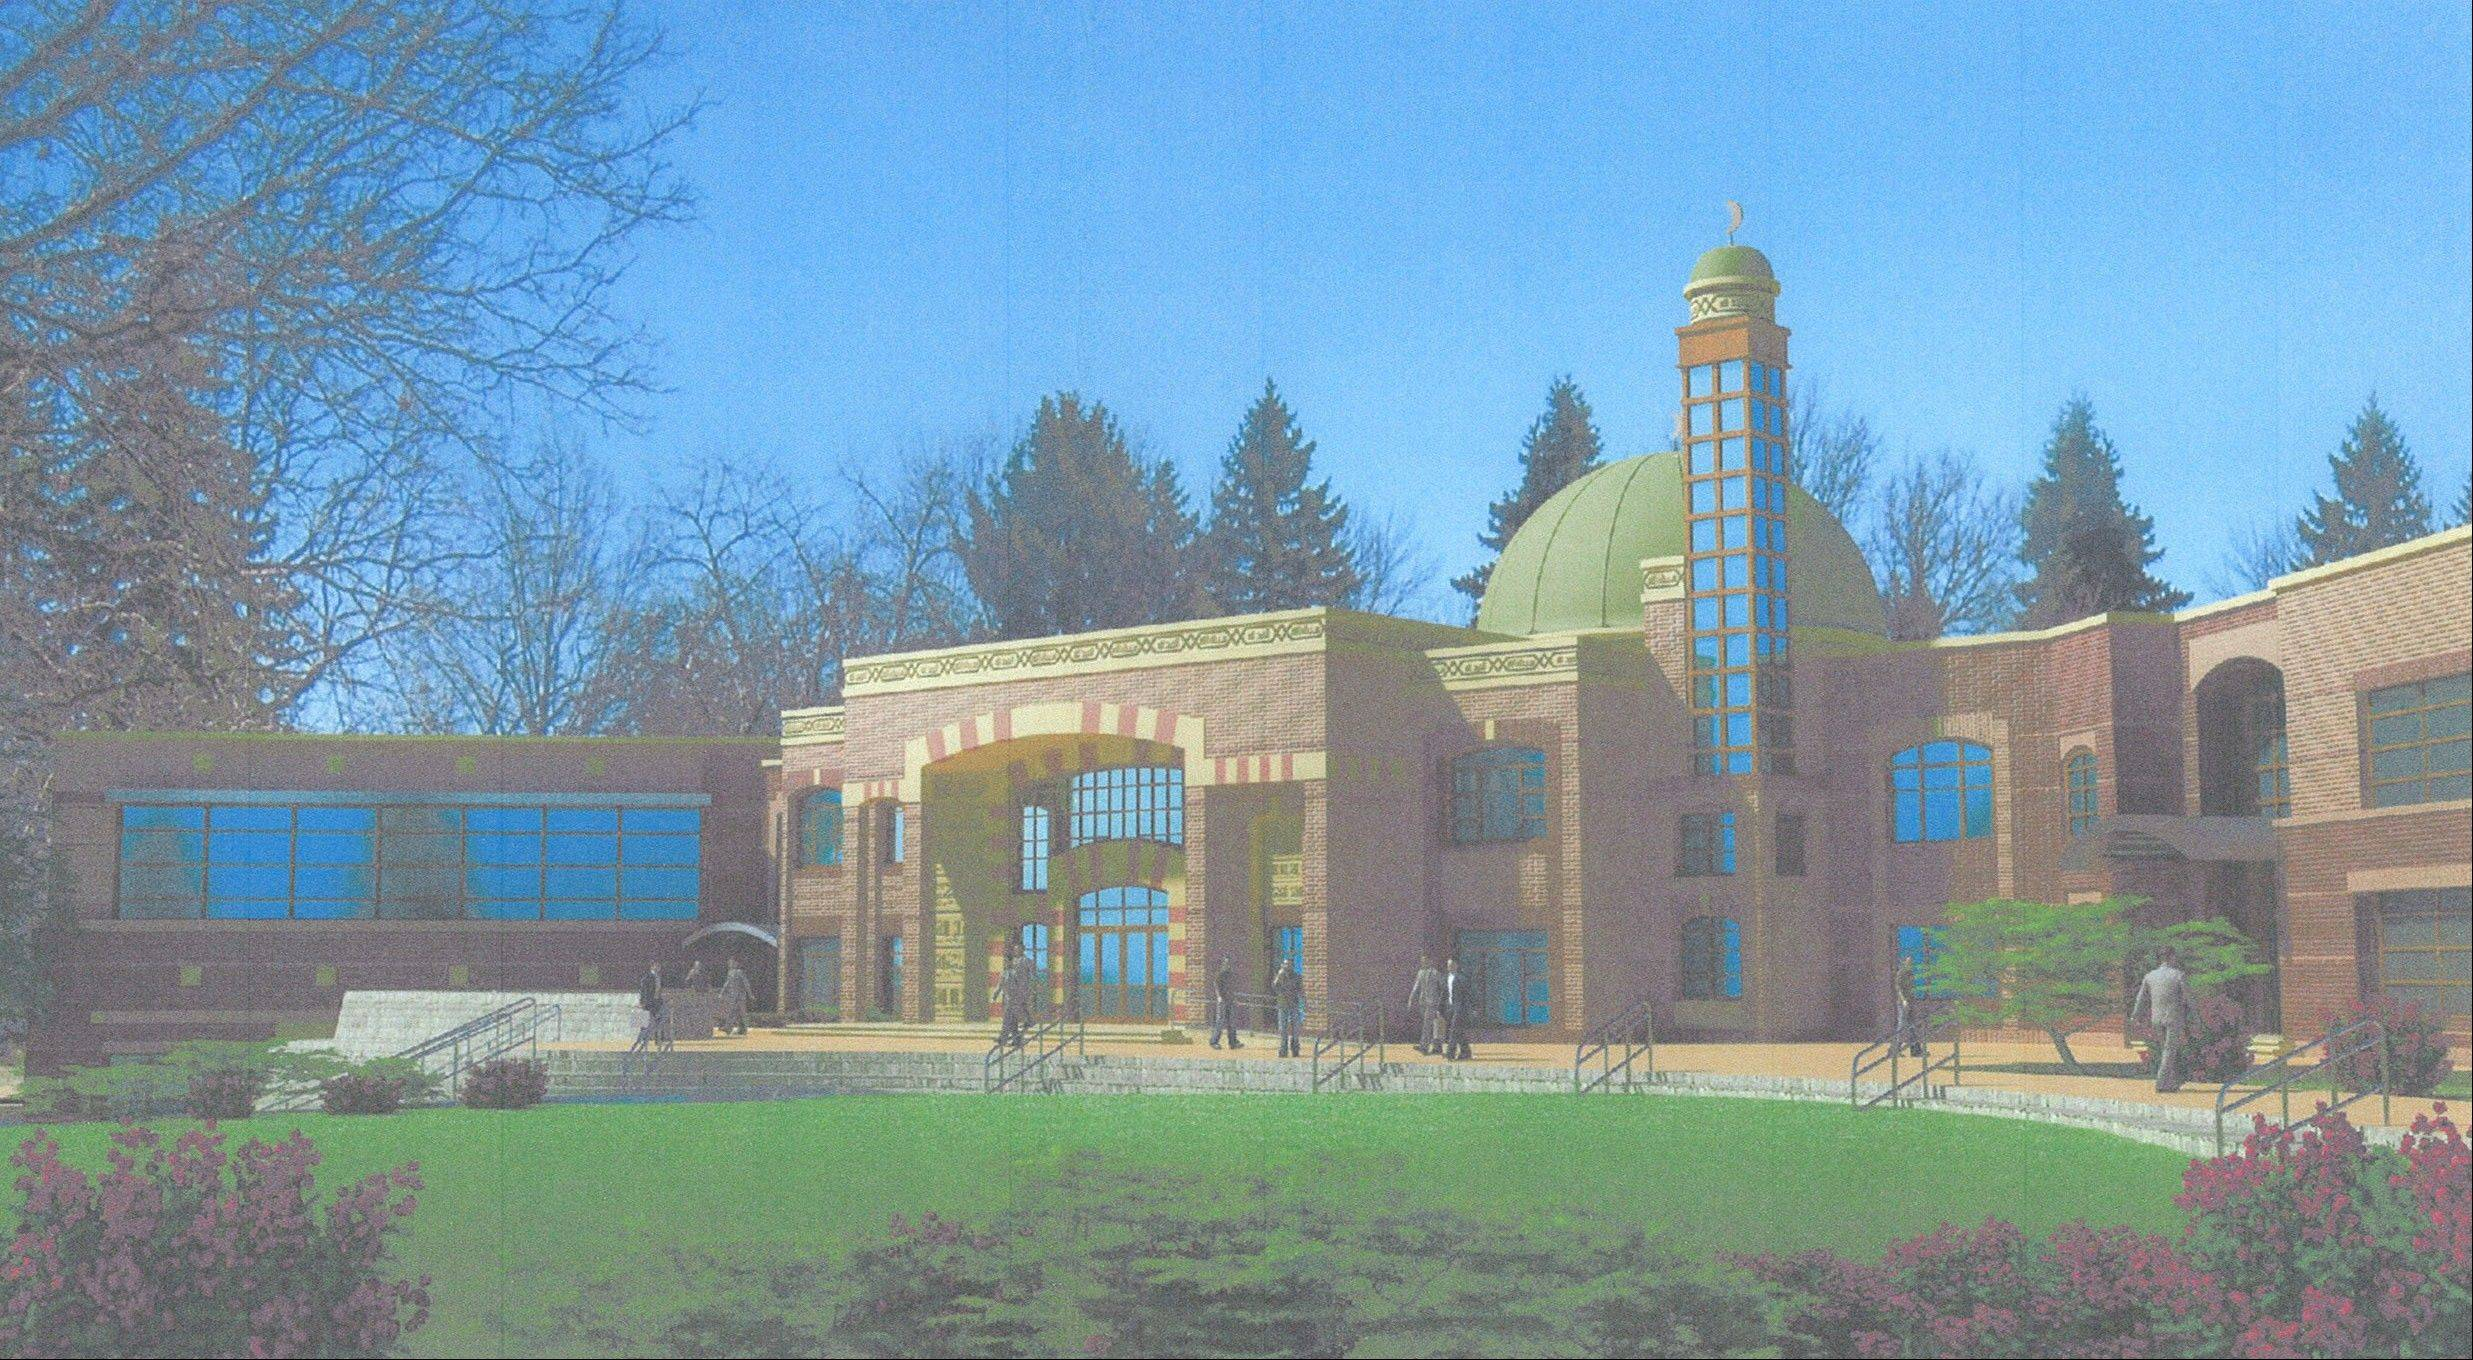 The Muslim Educational and Cultural Center plans to build a 47,000-square-foot mosque along 91st Street near Willowbrook. But the project must begin by June 22, county officials said, after they refused to grant a one-month extension.